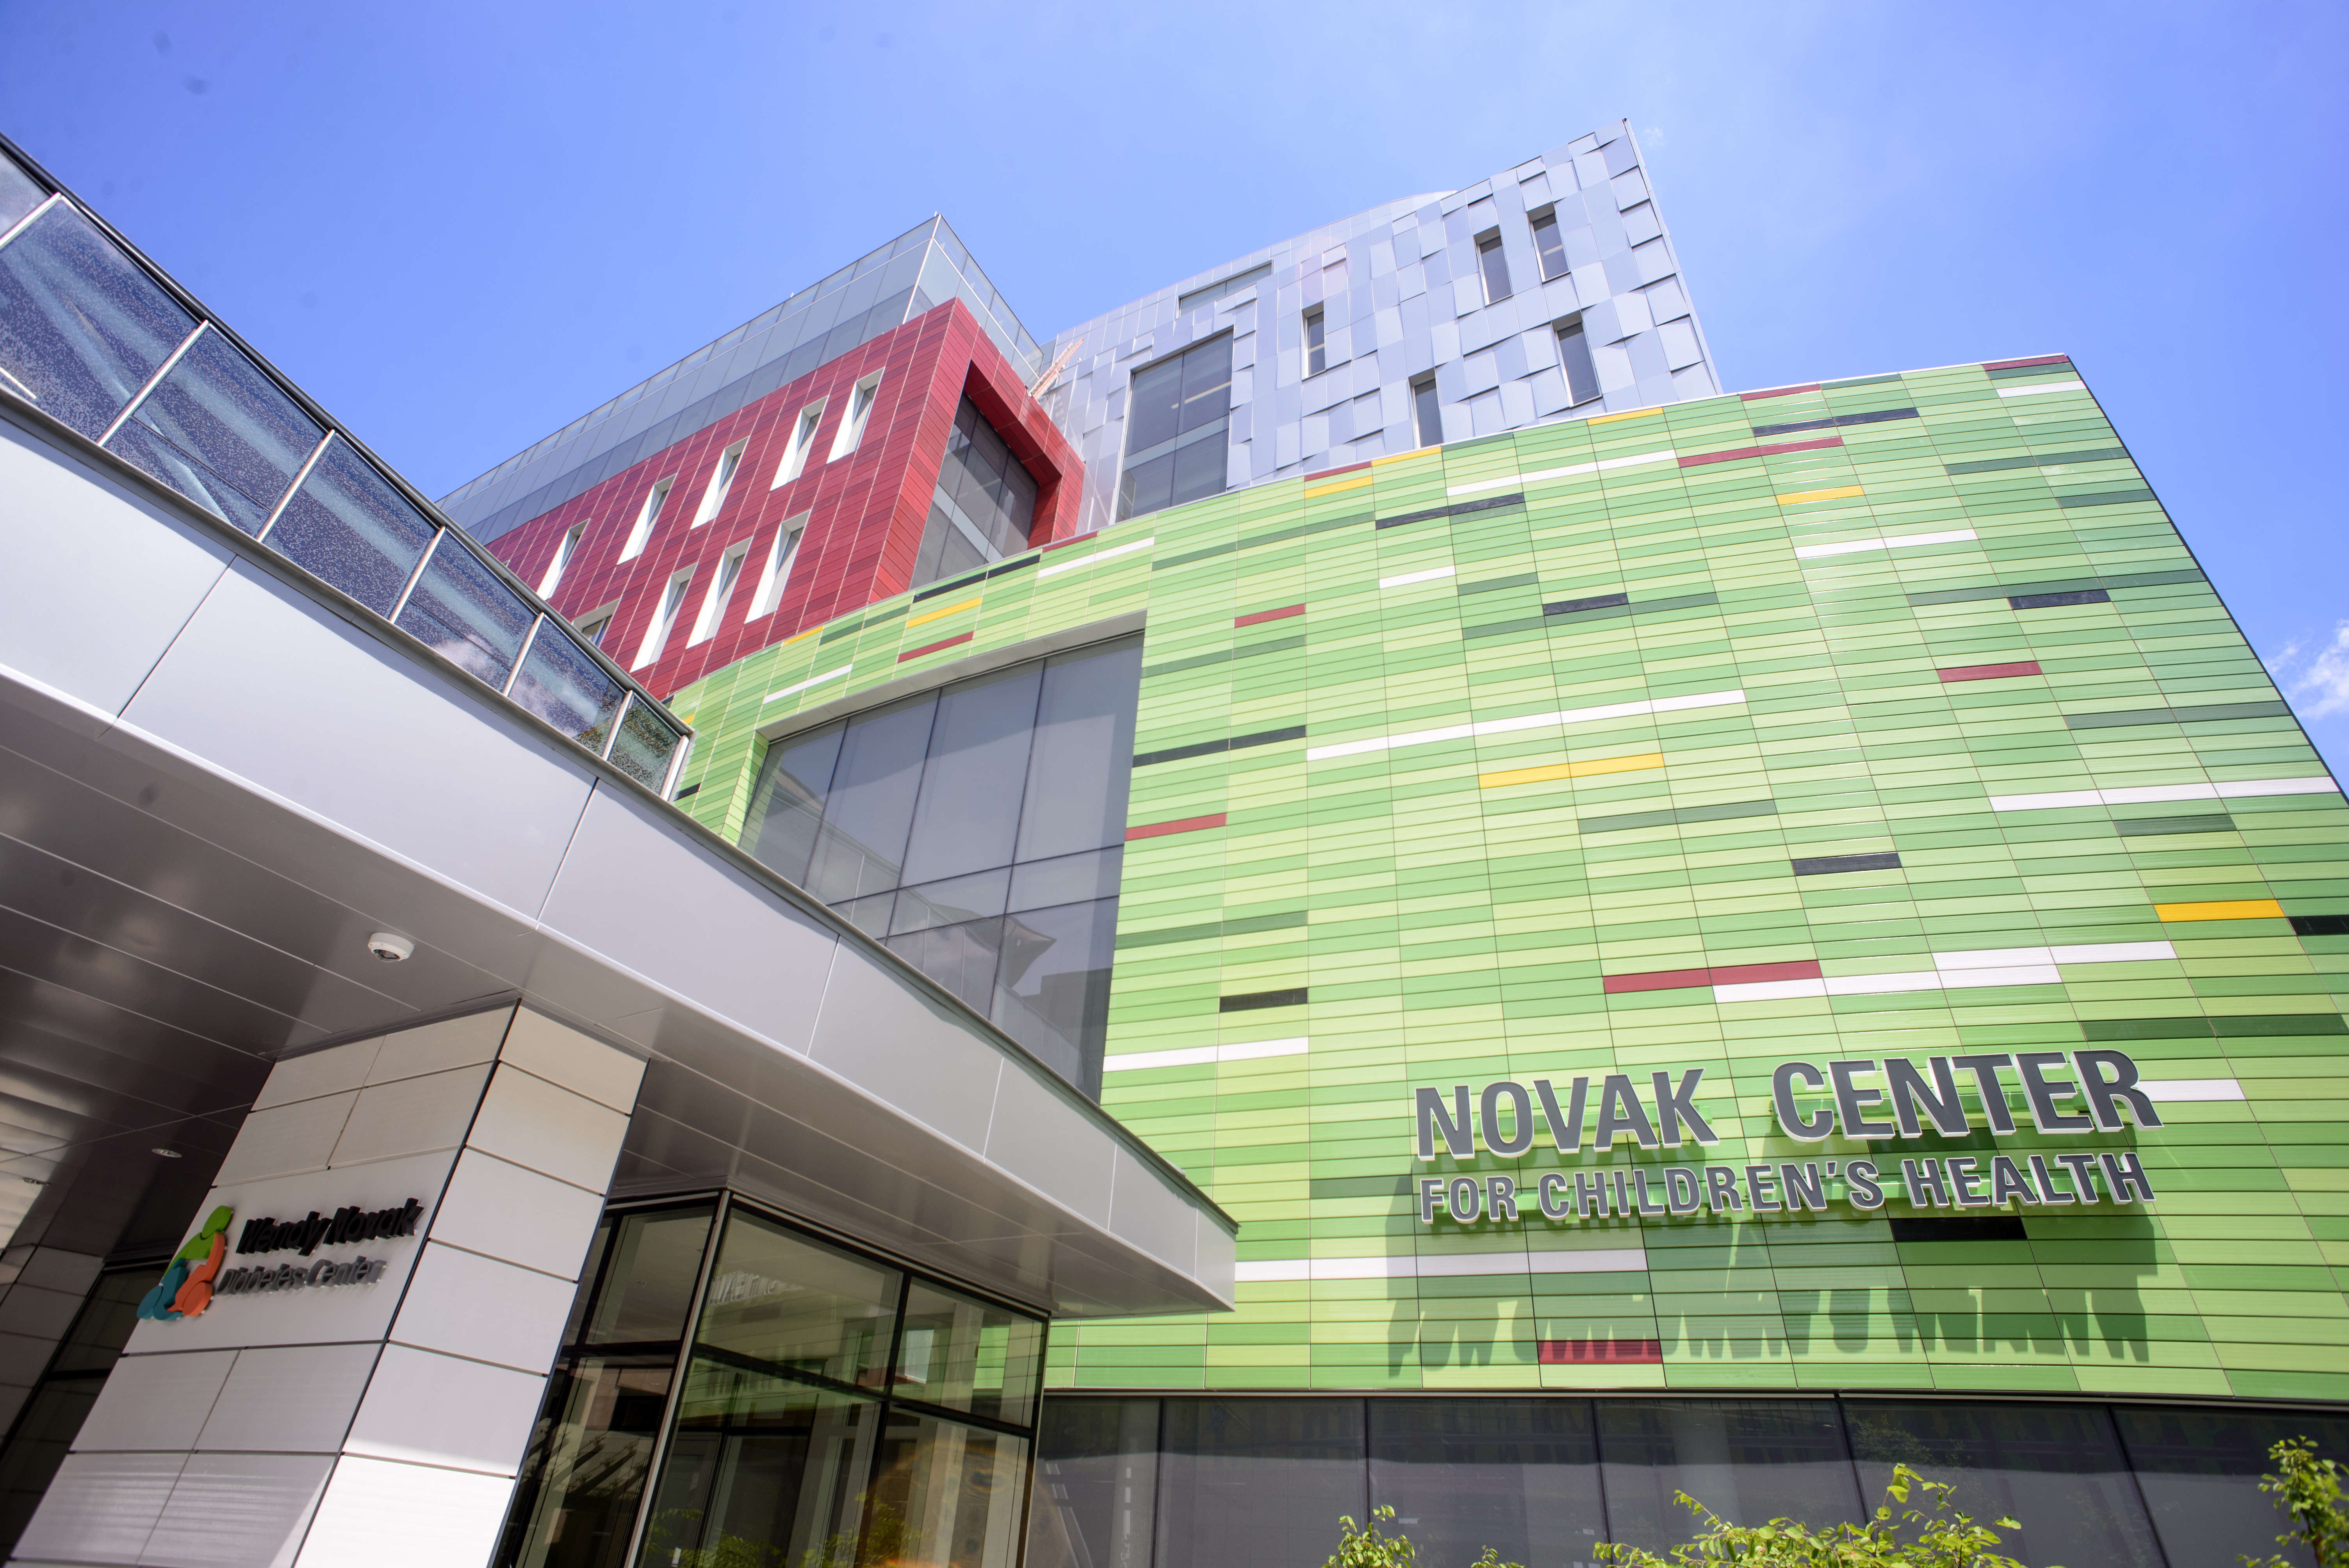 Support from Crusade for Children enables UofL Pediatrics to extend access